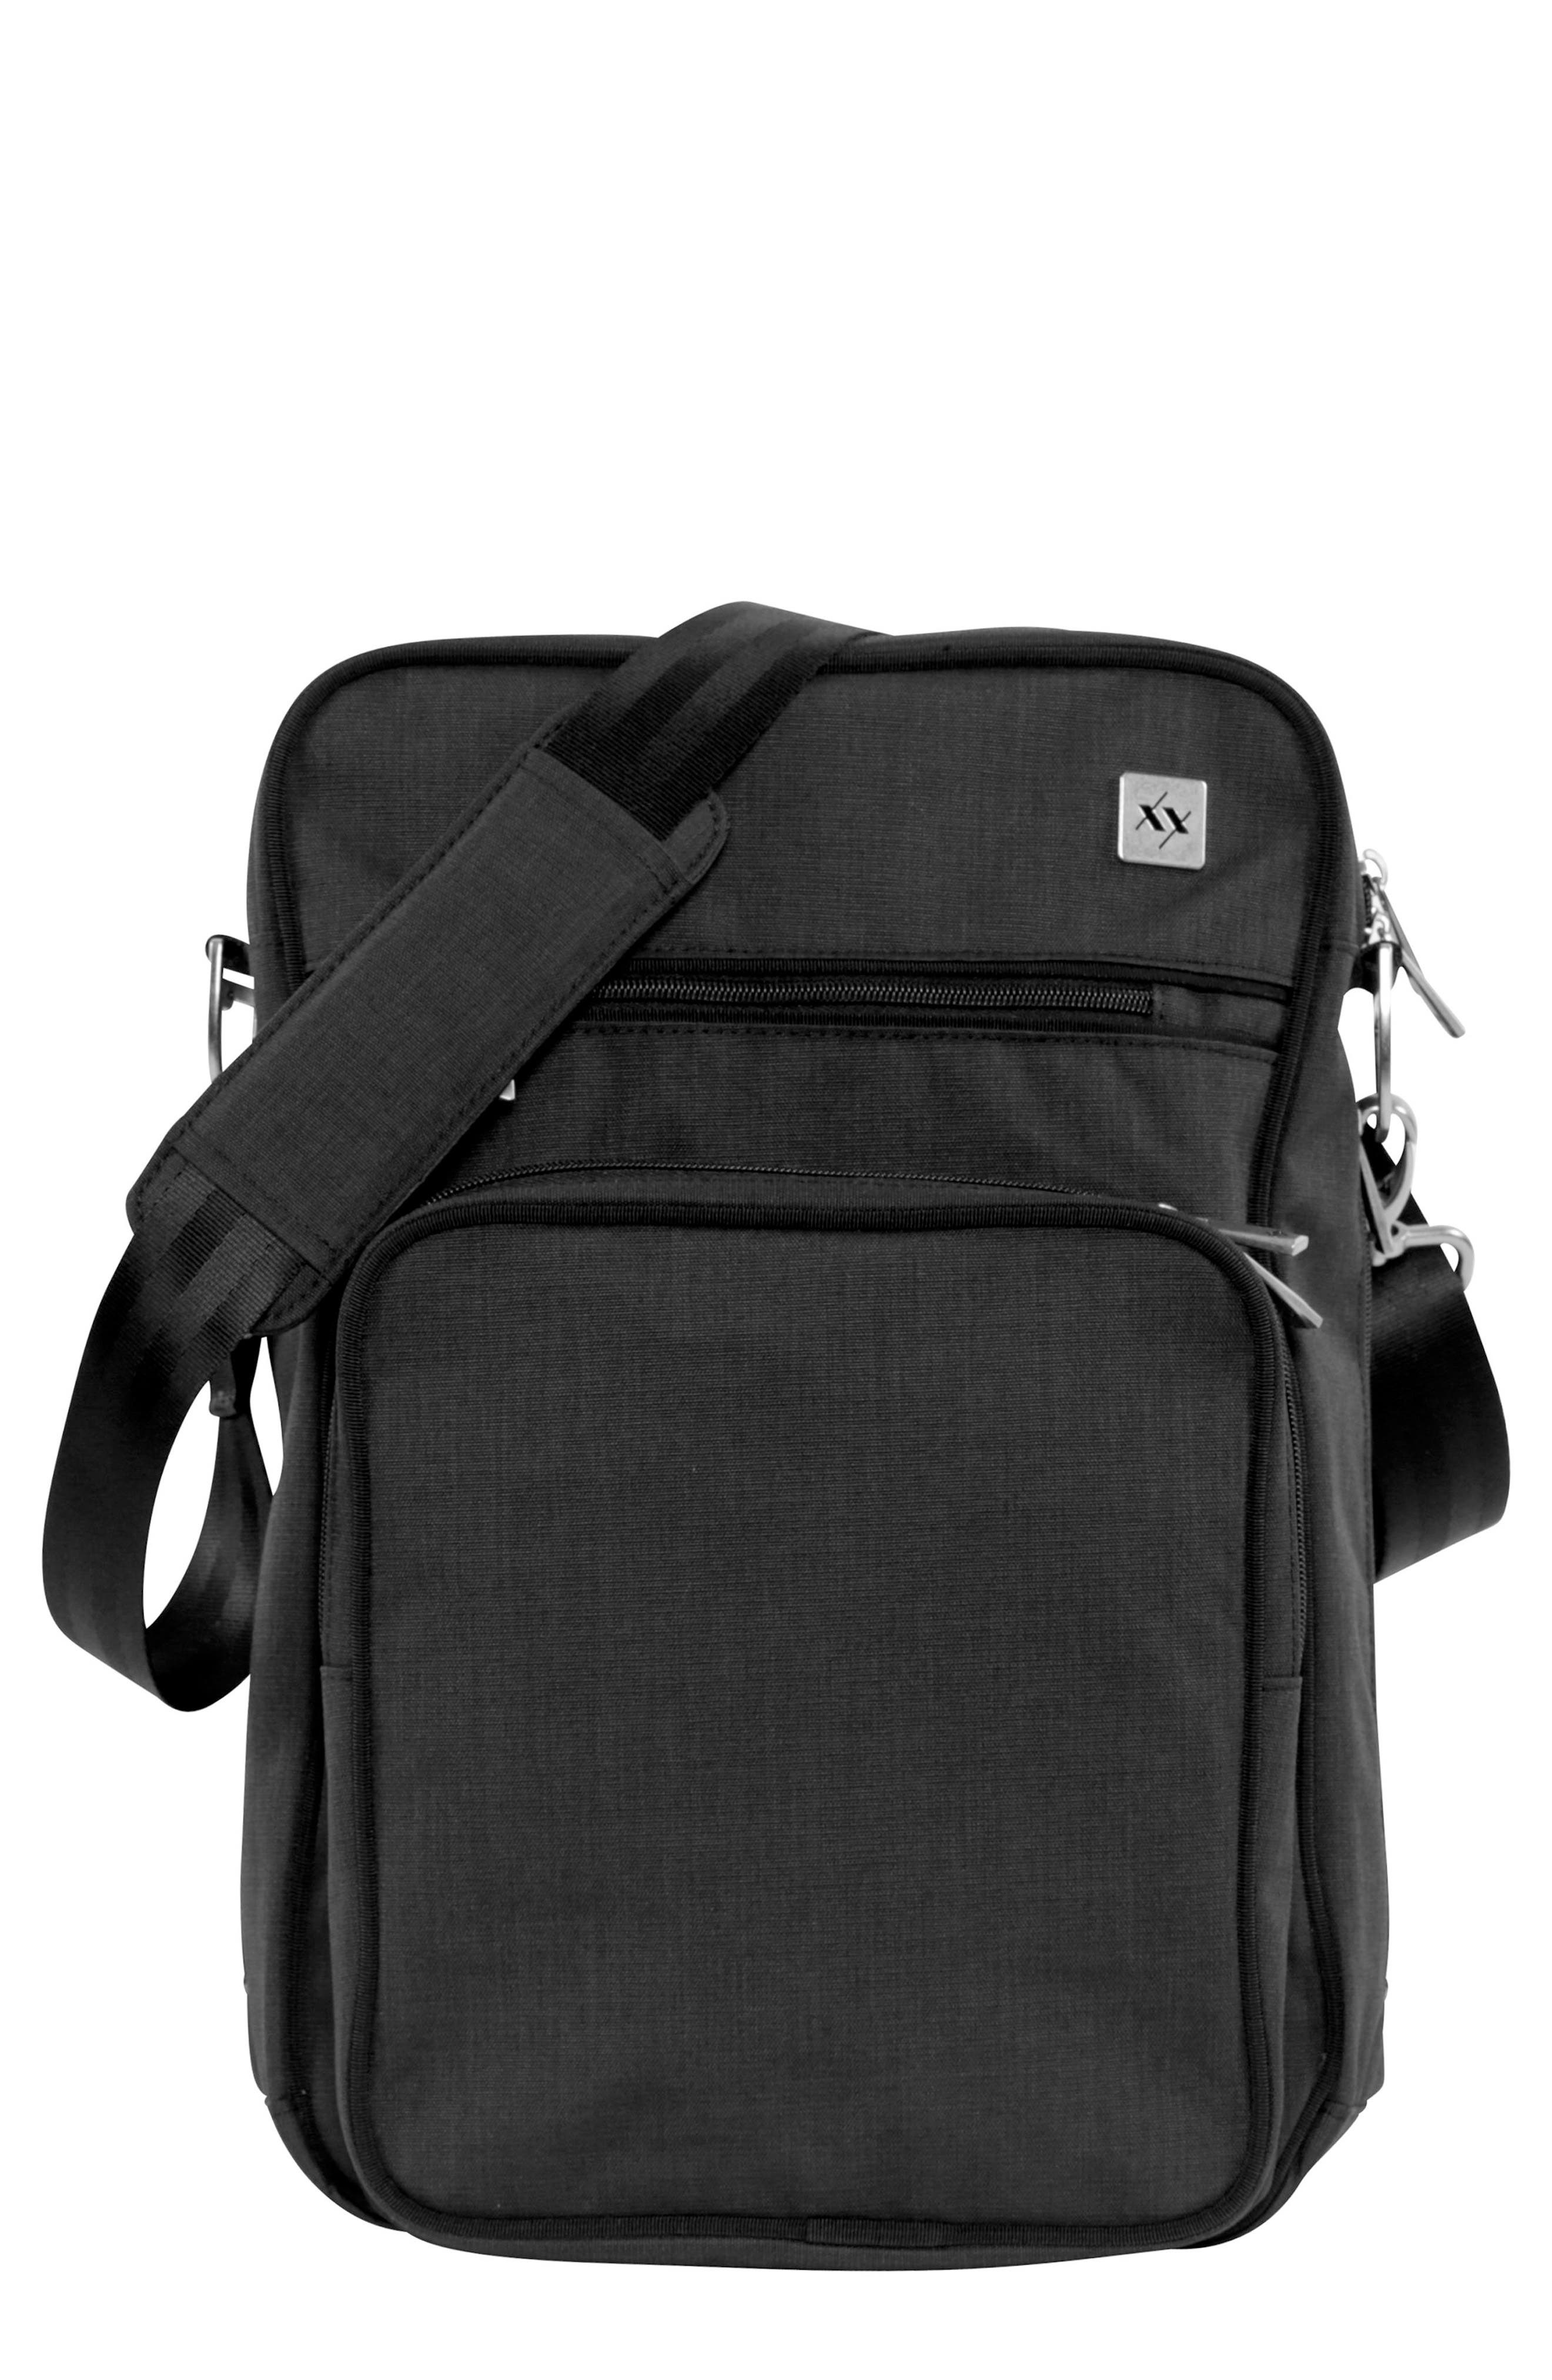 Helix Onyx Collection Messenger Diaper Bag,                             Main thumbnail 1, color,                             009